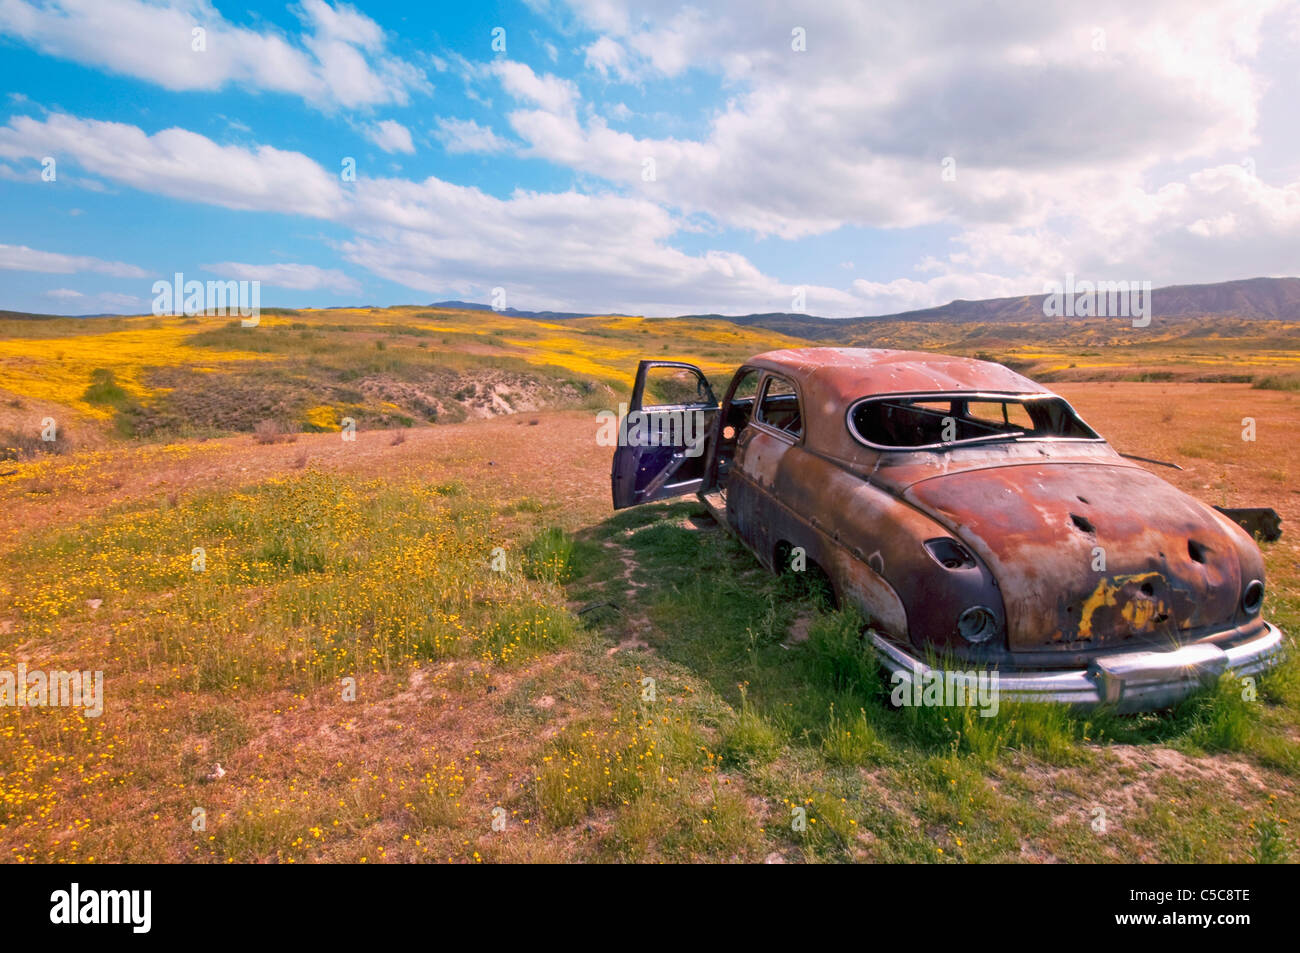 An Abandoned Car In The Carrizo Plains National Monument; Mariposa, California, United States Of America - Stock Image